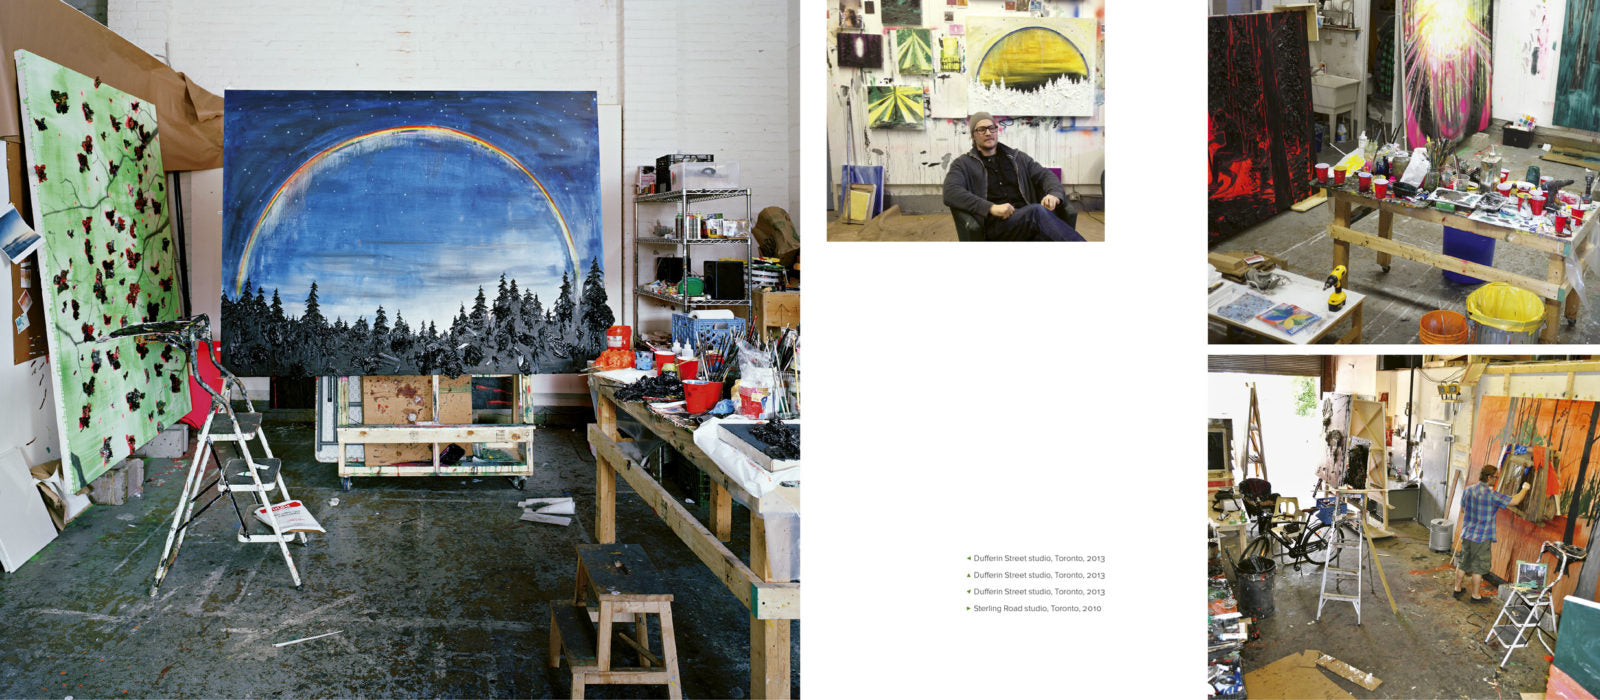 Sample page from Canadian art book Kim Dorland with four studio shots.